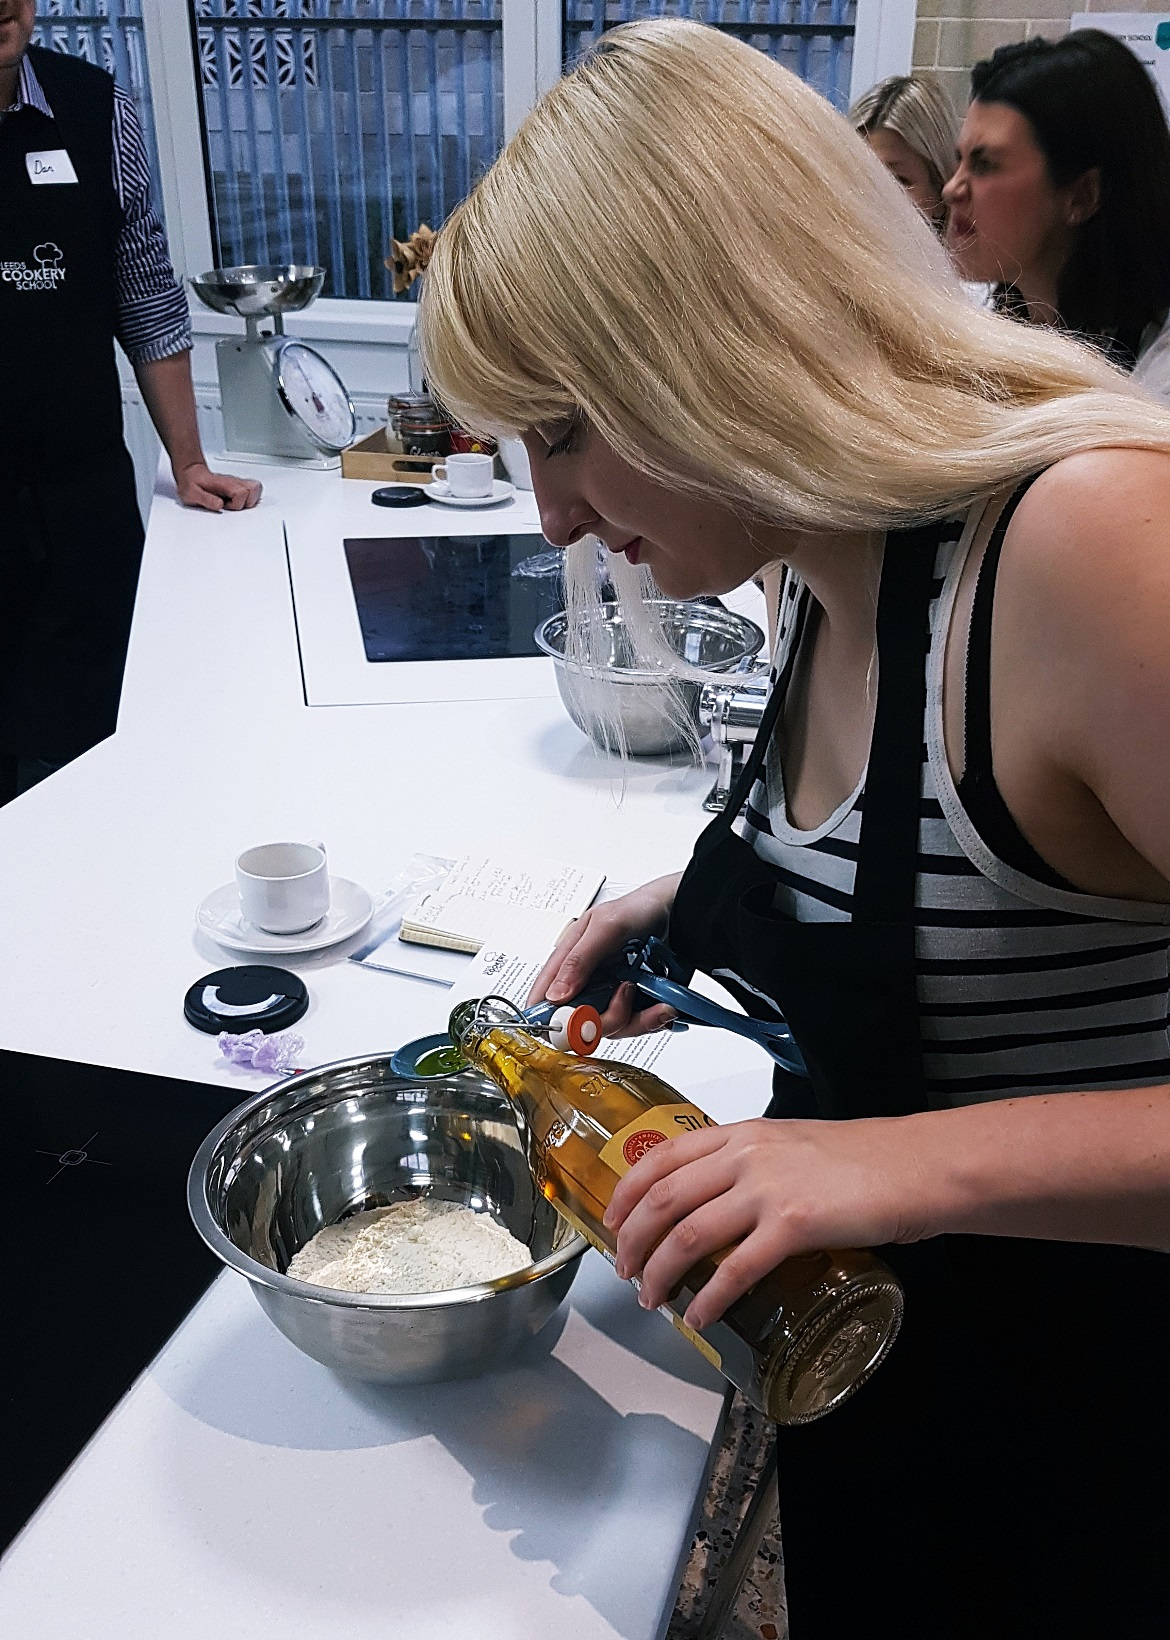 Making pasta dough at Leeds Cookery School - September Monthly Recap by BeckyBecky Blogs